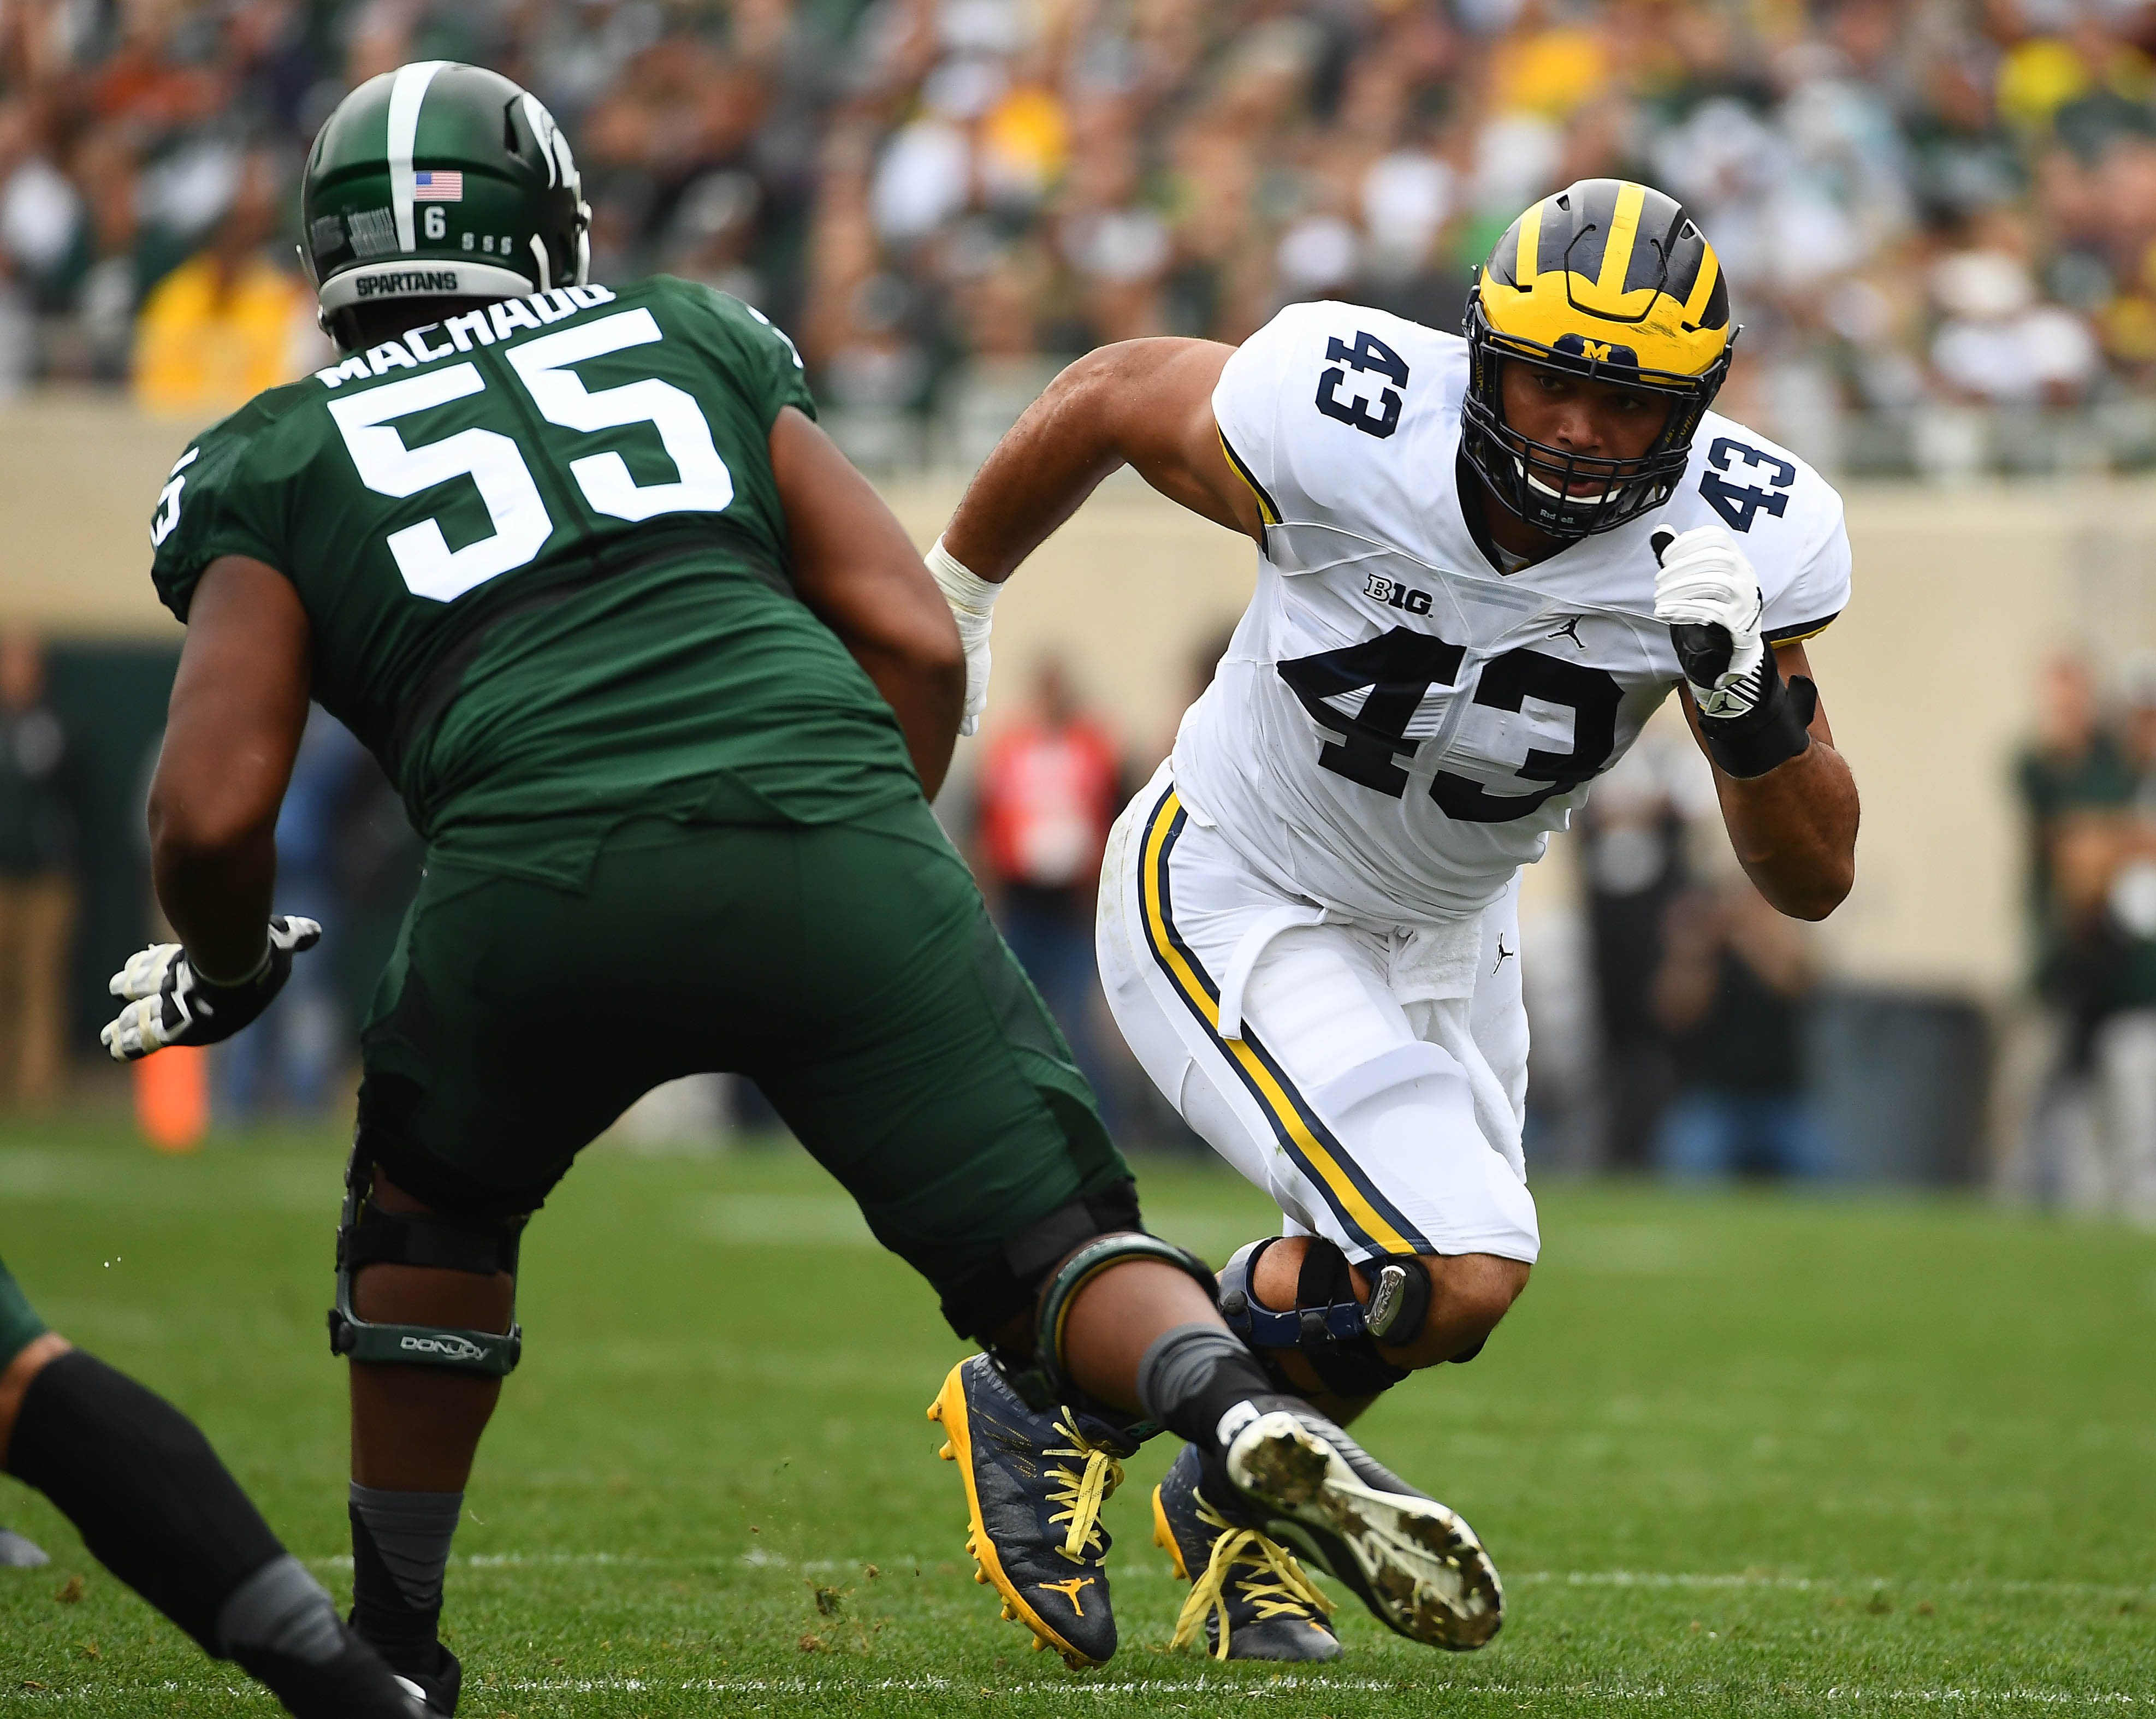 michigan state defensive nfl players spartans sports wormley wolverines chris round offensive spartan mi miguel end machado east mills football